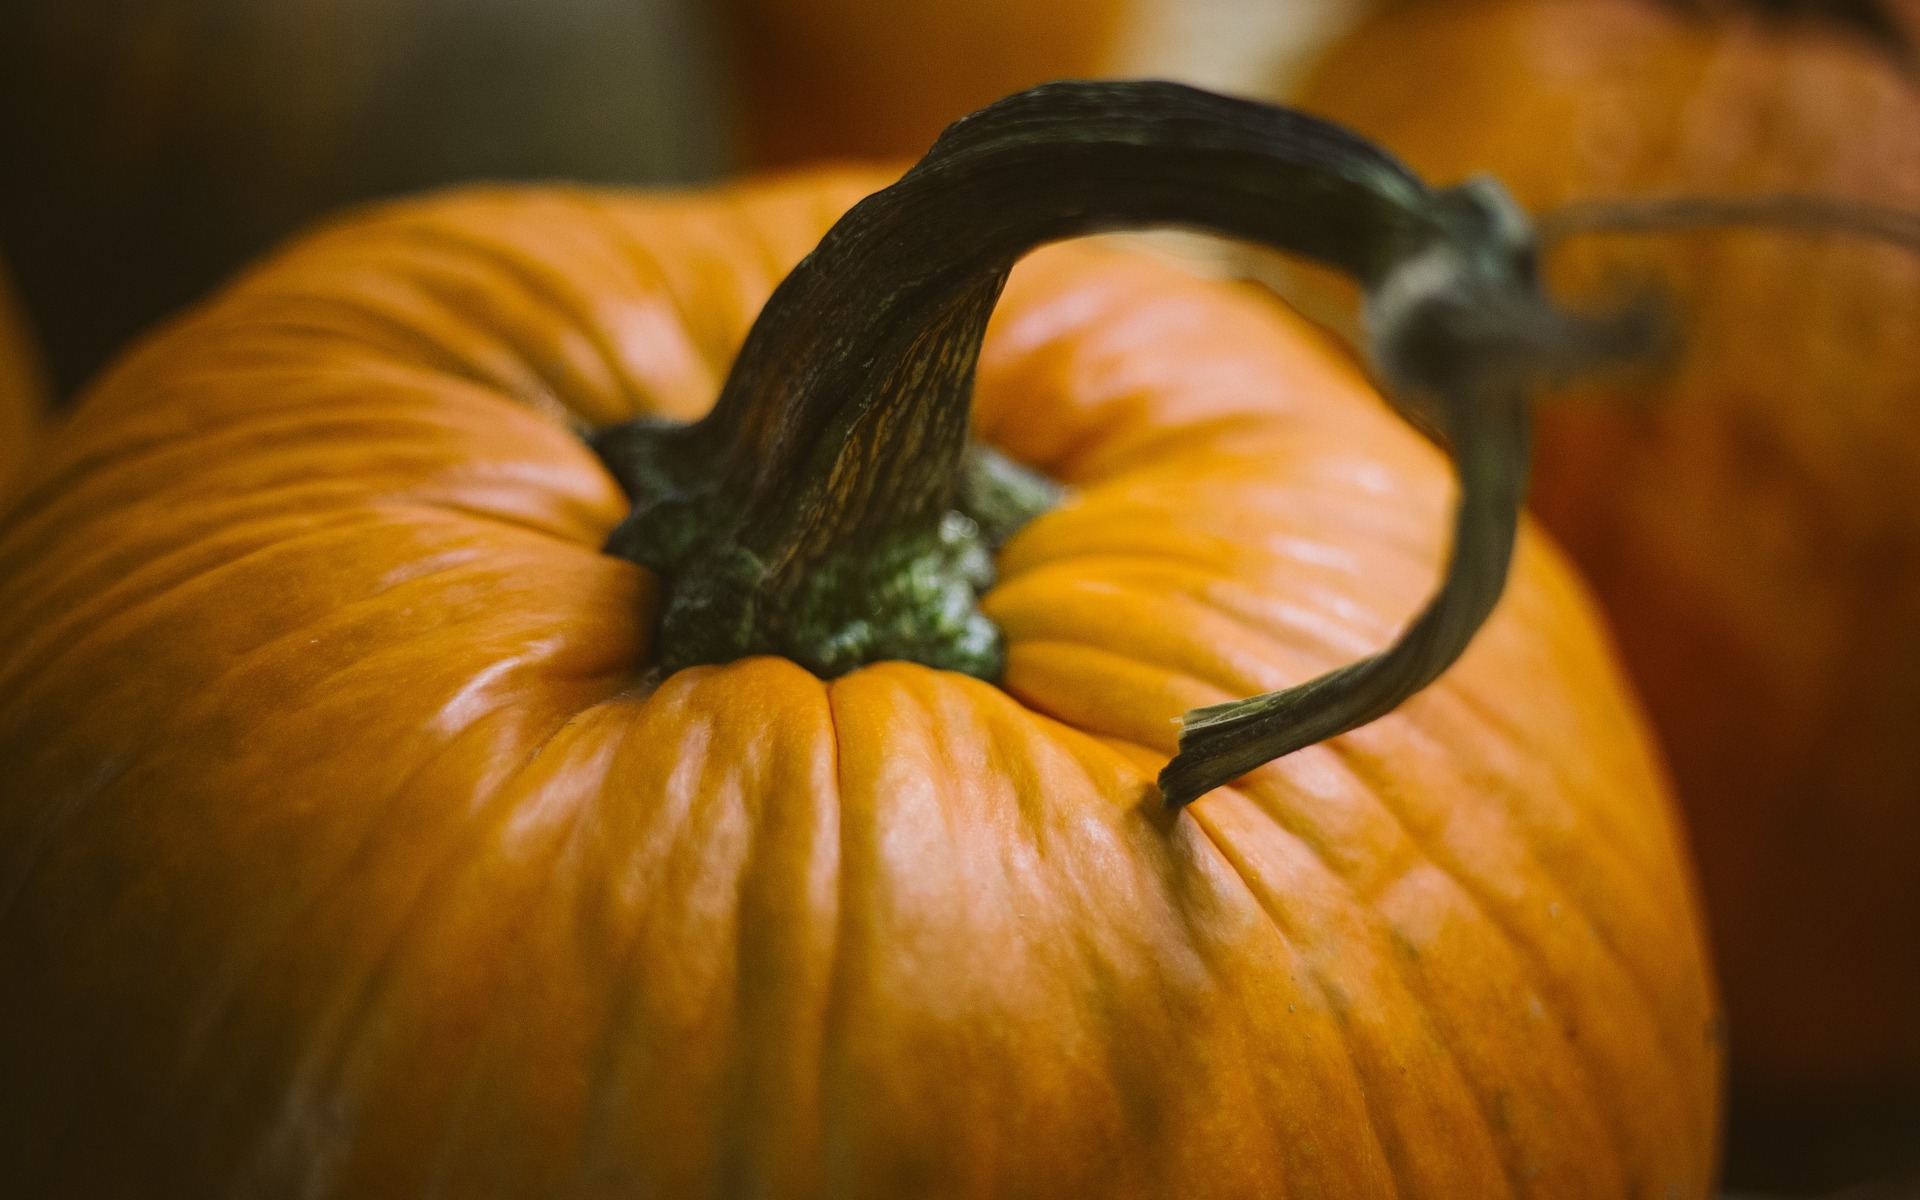 Pumpkins: Benefits and Nutrition Facts